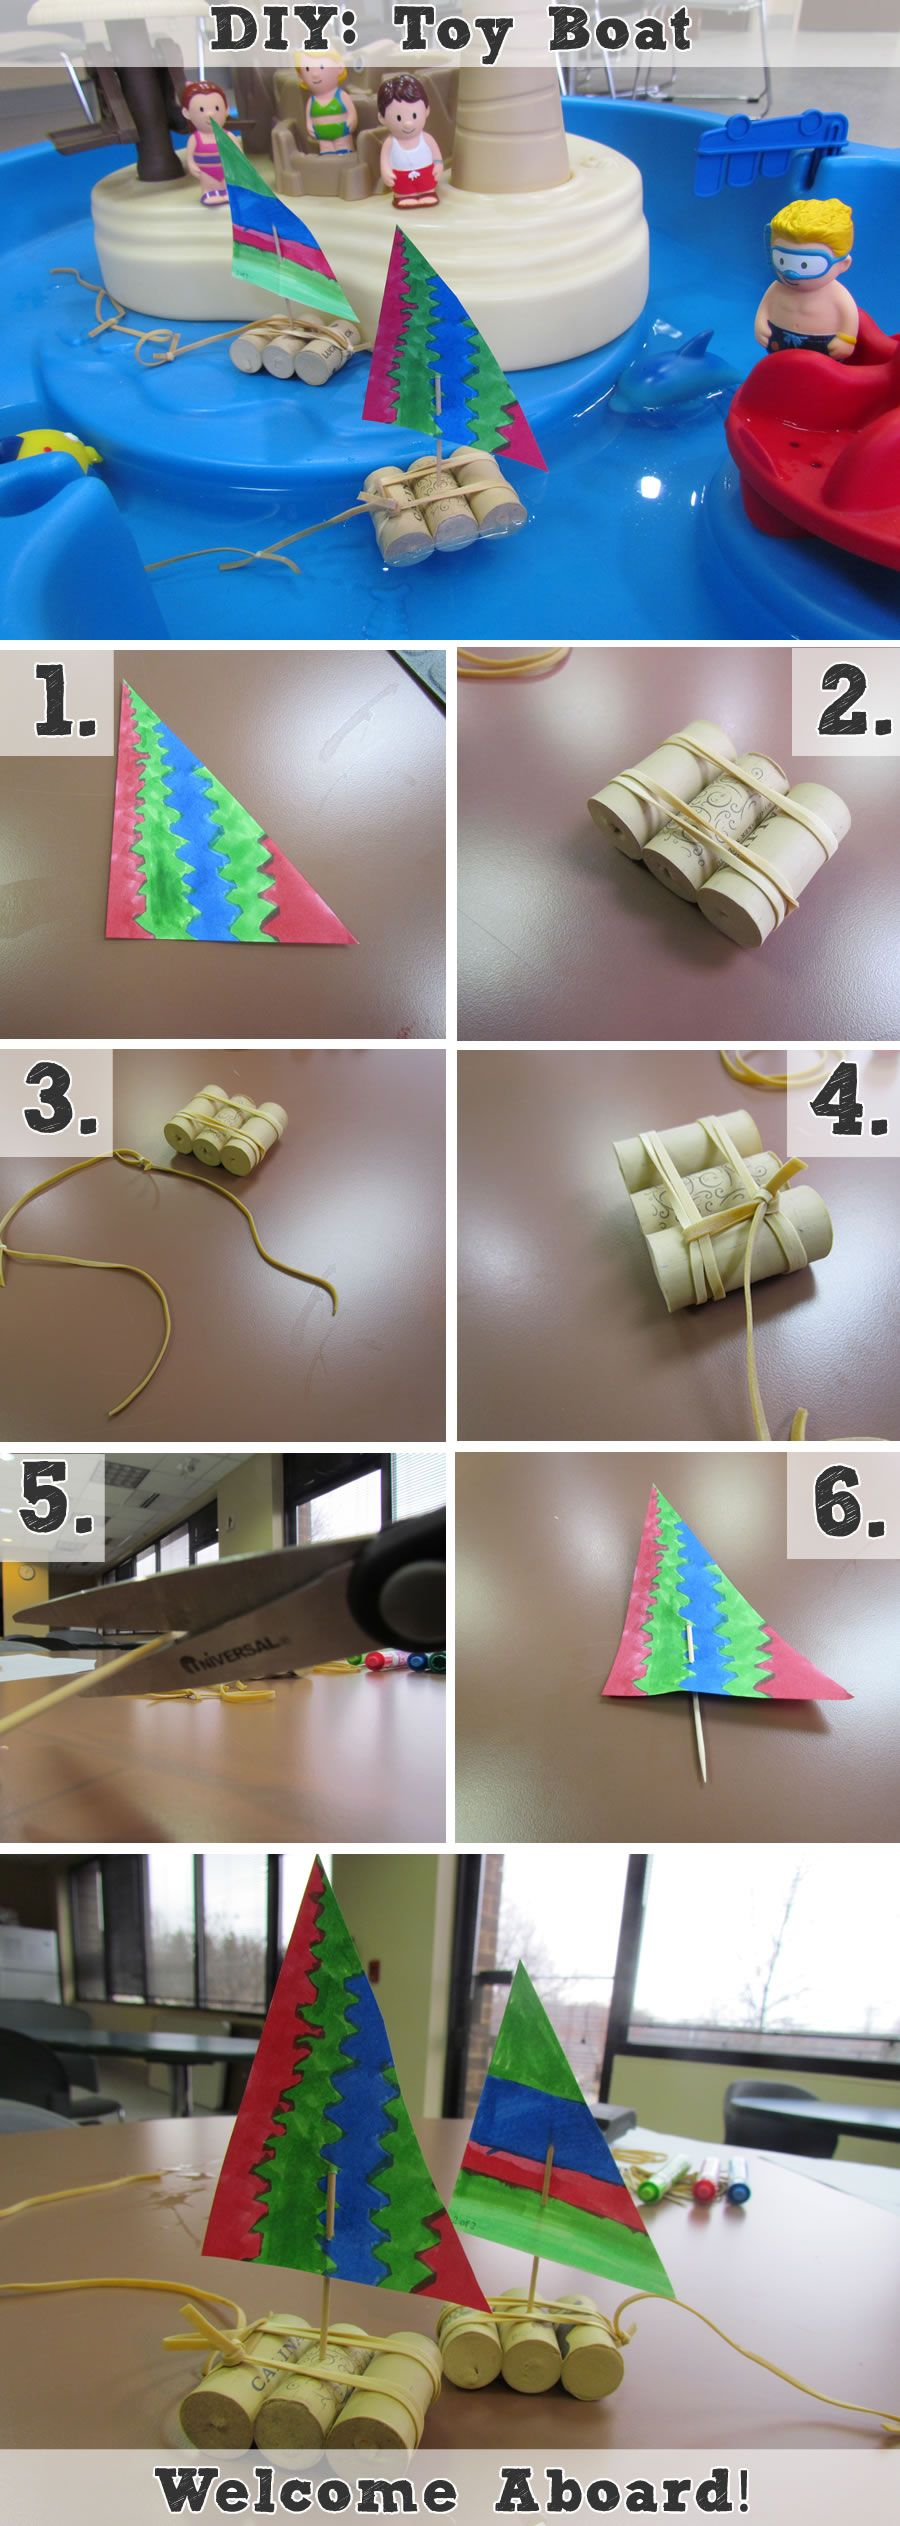 See how easy it is to make a DIY floating boat toy Get creative